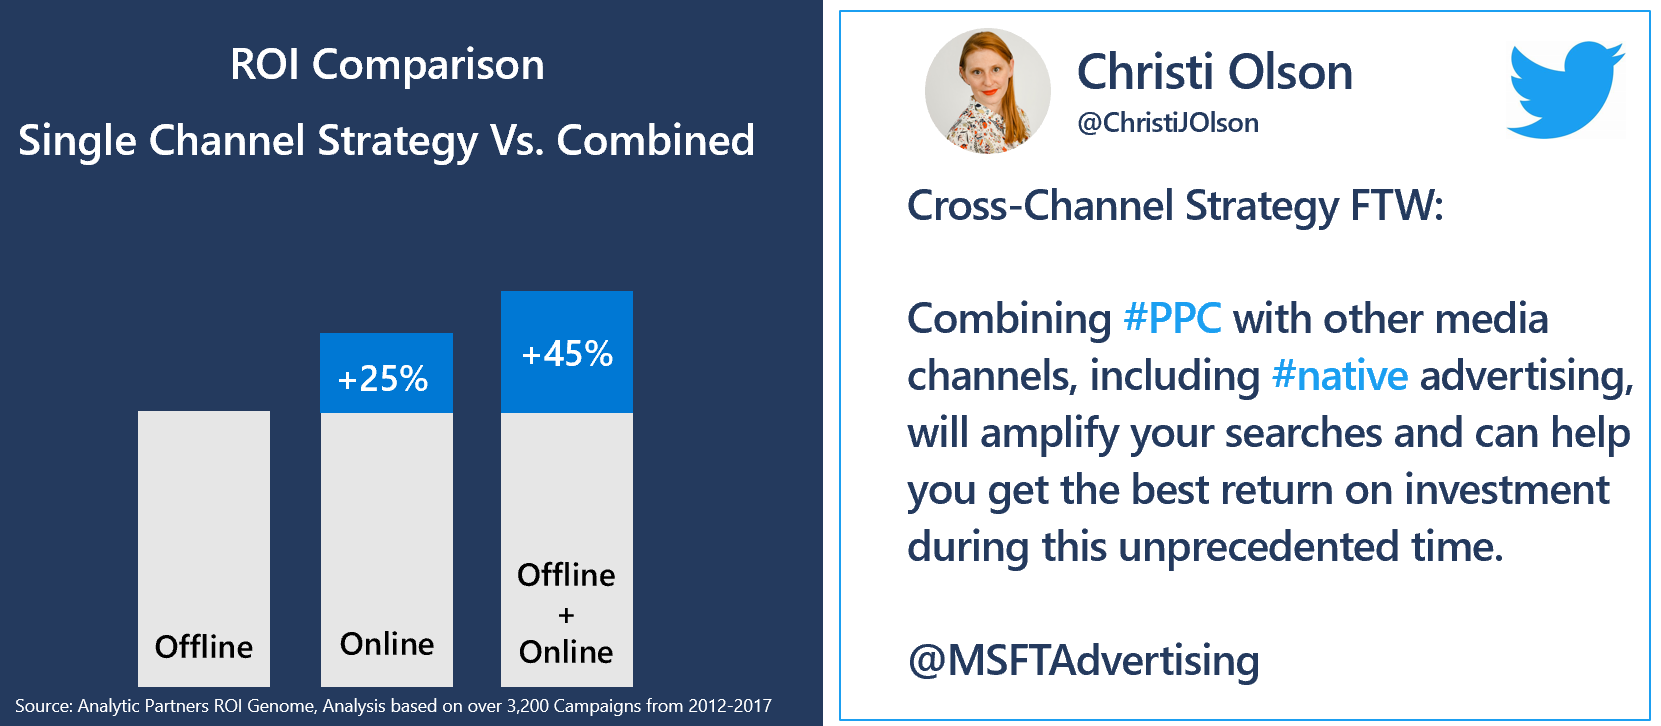 ROI comparison of single channel strategy versus a combined cross channel strategy. Showing that multiple digital strategies have a +25% increase in ROI and combining multiple online strategies and offline increase revenue up to 45%.